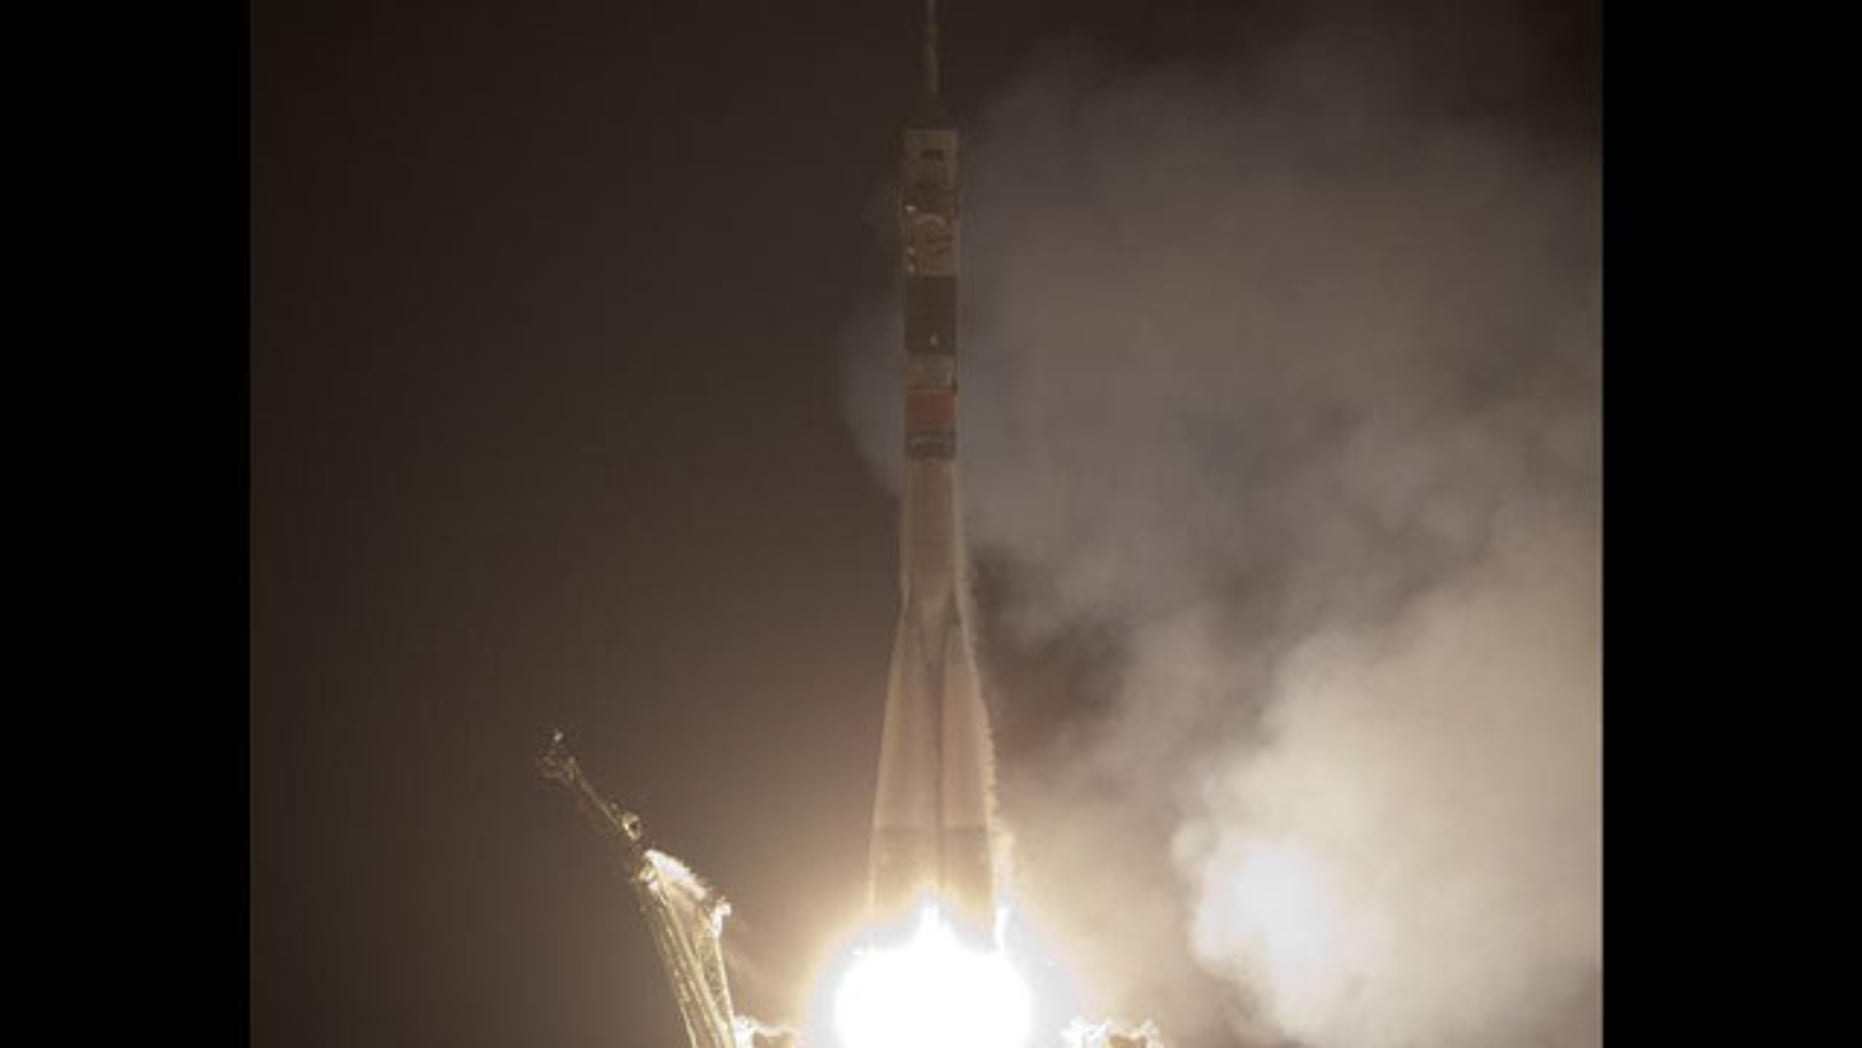 The Soyuz TMA-17 rocket launches from the Baikonur Cosmodrome in Kazakhstan at 4:52 p.m. EST on Sunday, Dec. 20, carrying Expedition 22 NASA Flight Engineer Timothy J. Creamer of the U.S., Soyuz Commander Oleg Kotov of Russia and Flight Engineer Soichi Noguchi of Japan to the International Space Station.